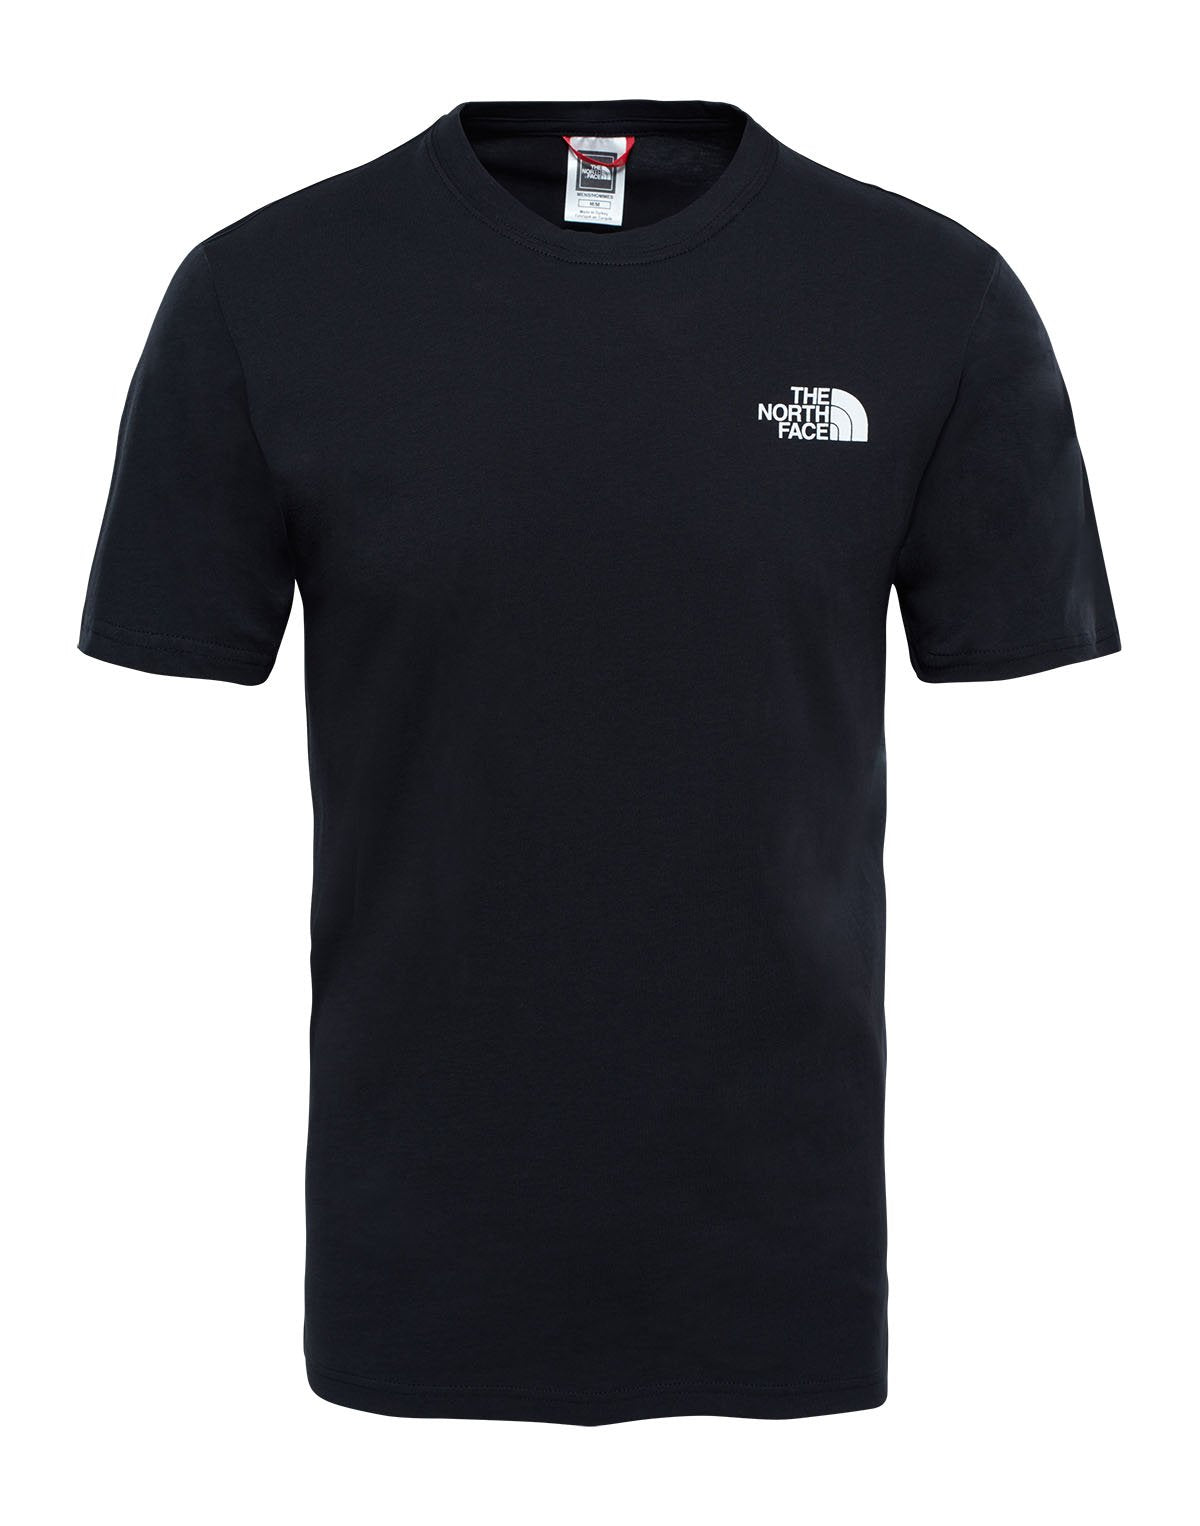 The North Face S/S Redbox T-shirt